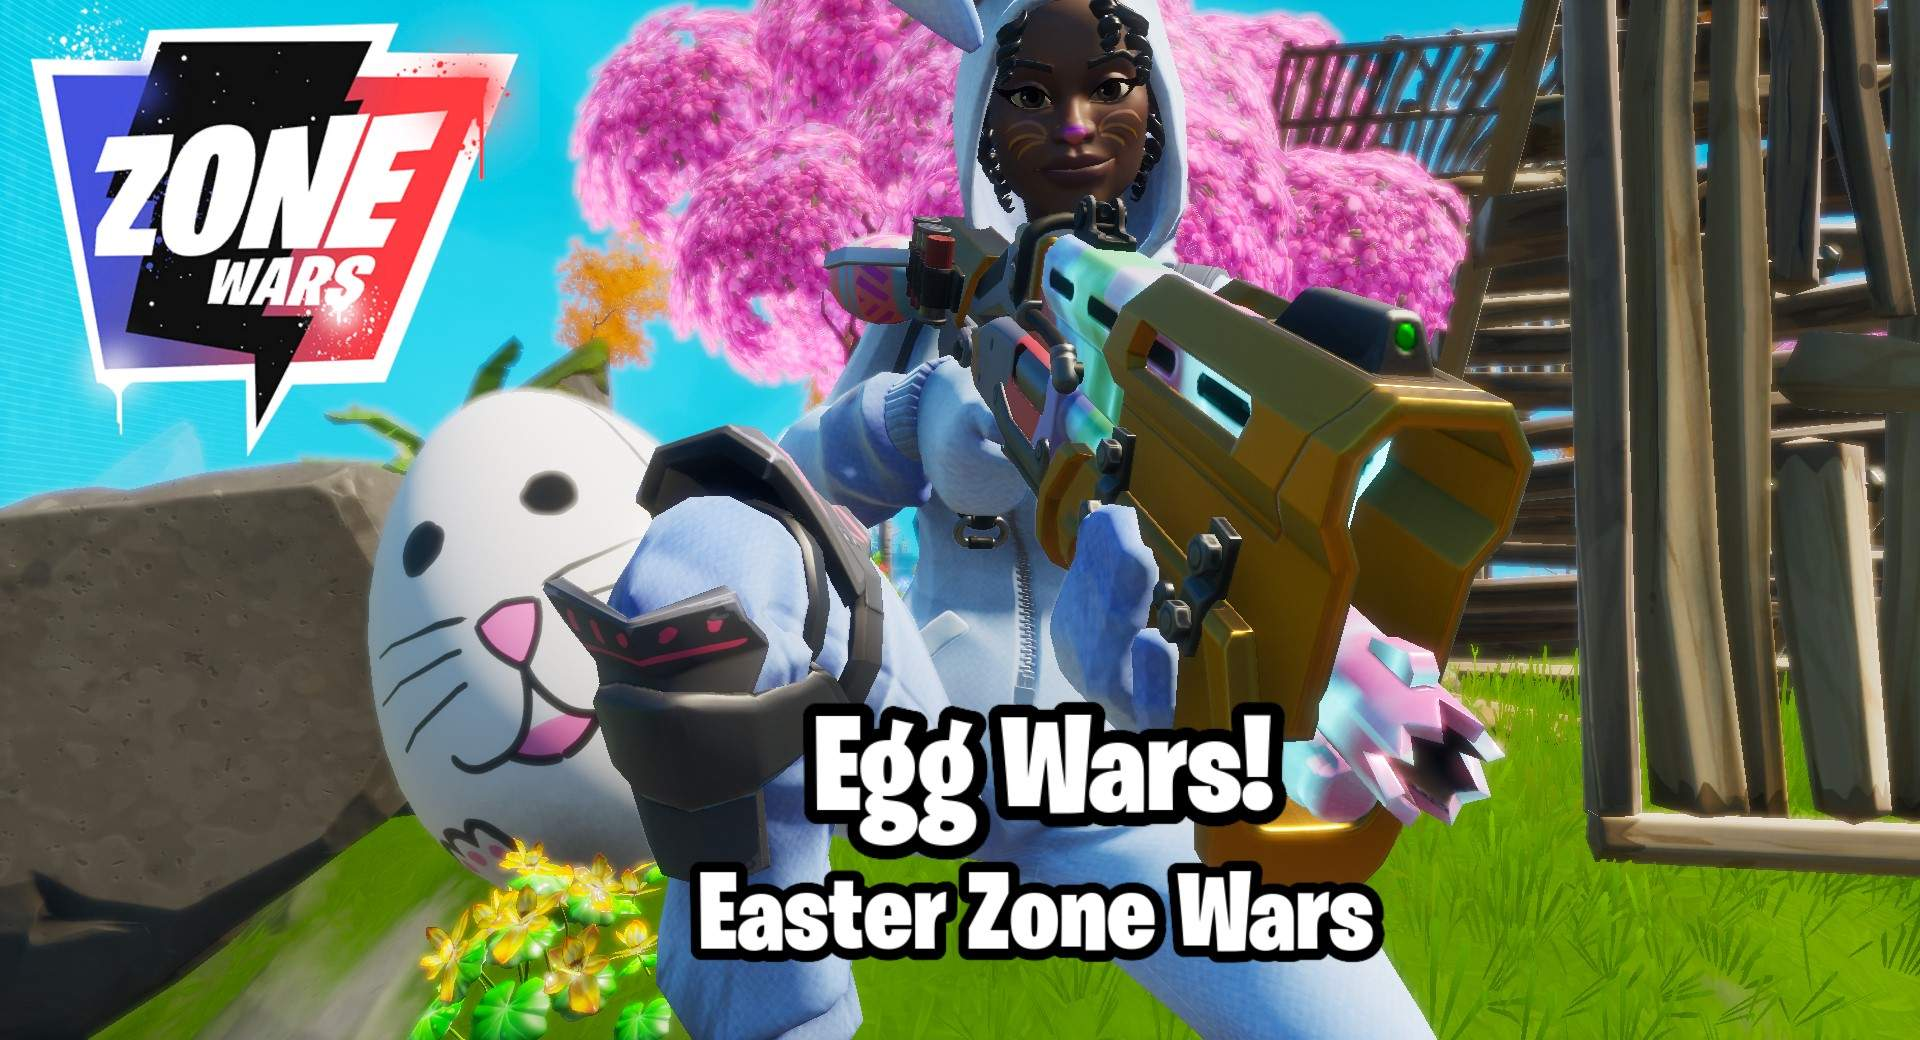 EGG WARS: AN EASTER ZONE WARS!